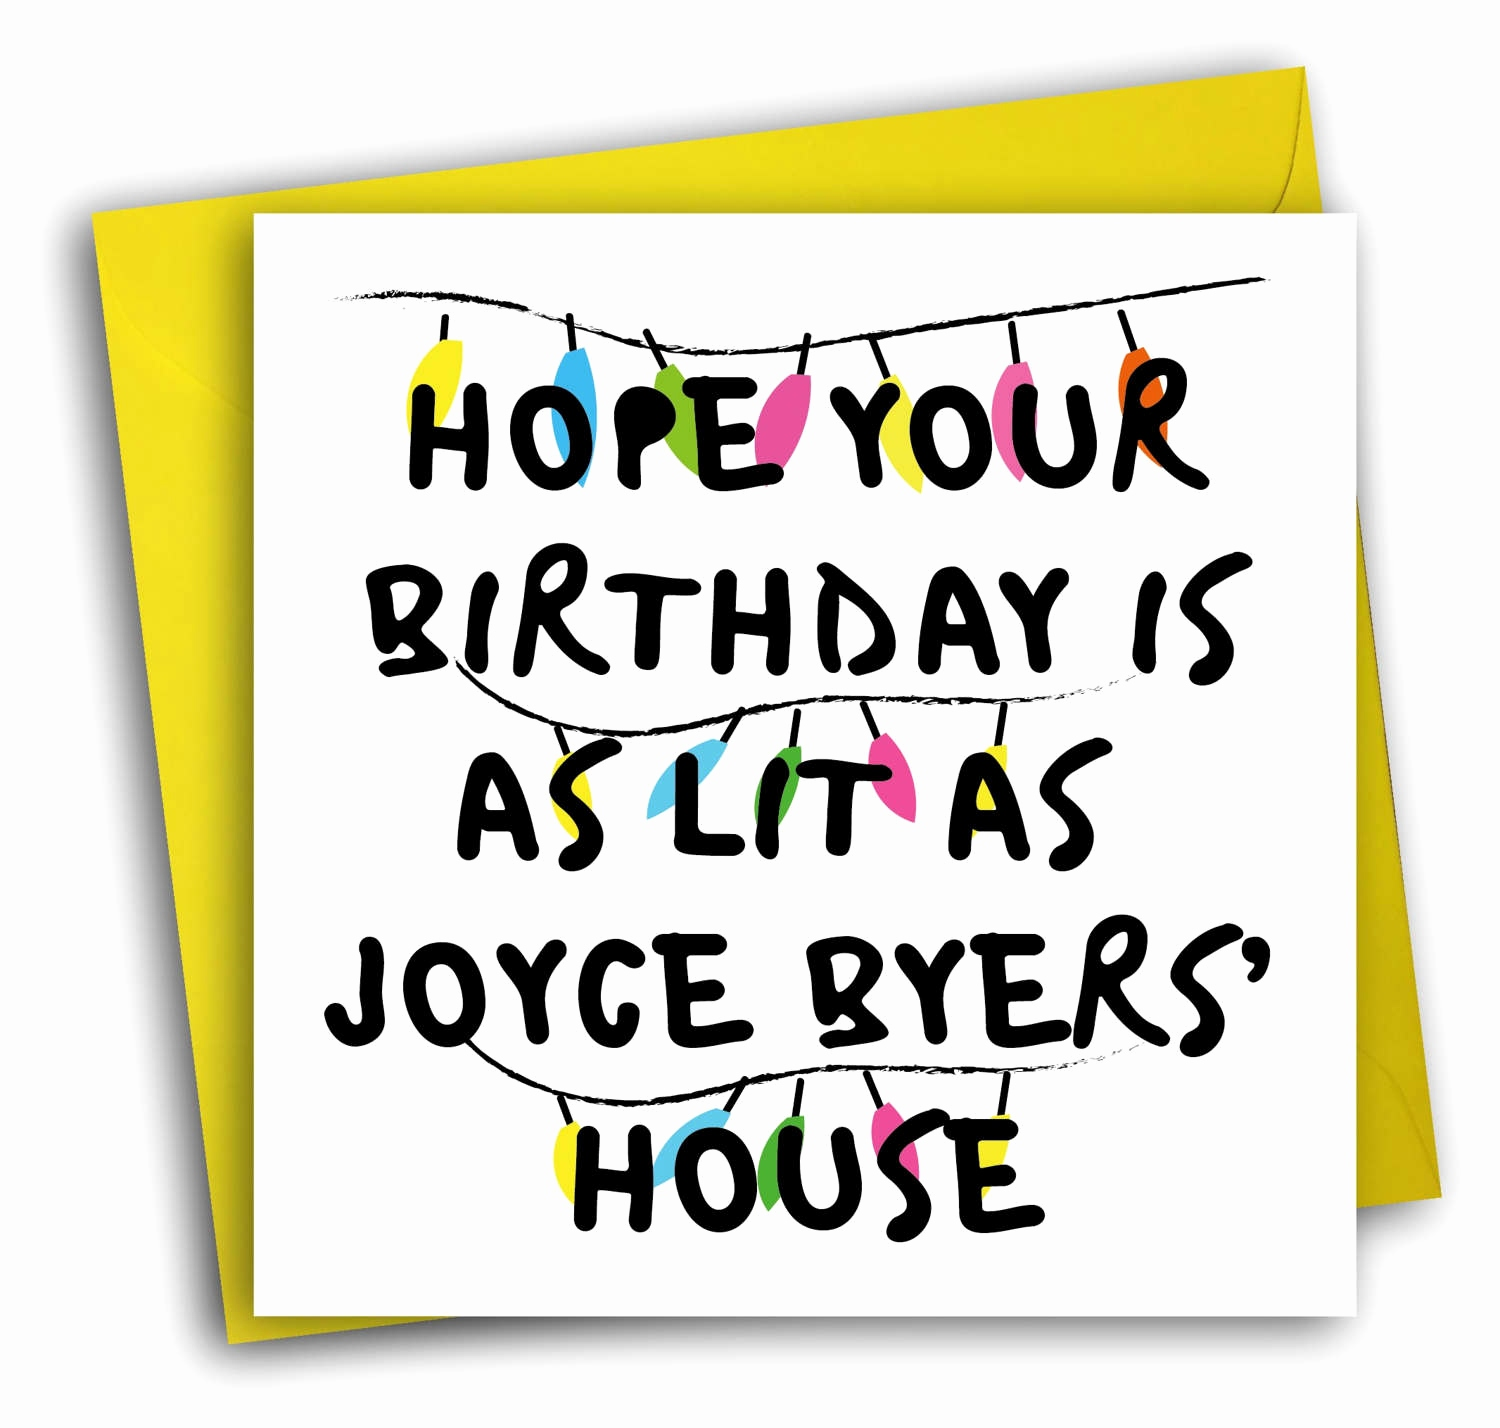 send a birthday wish to a cell phone ; send-birthday-card-to-cell-phone-new-stranger-things-card-funny-birthday-card-joyce-byers-of-send-birthday-card-to-cell-phone